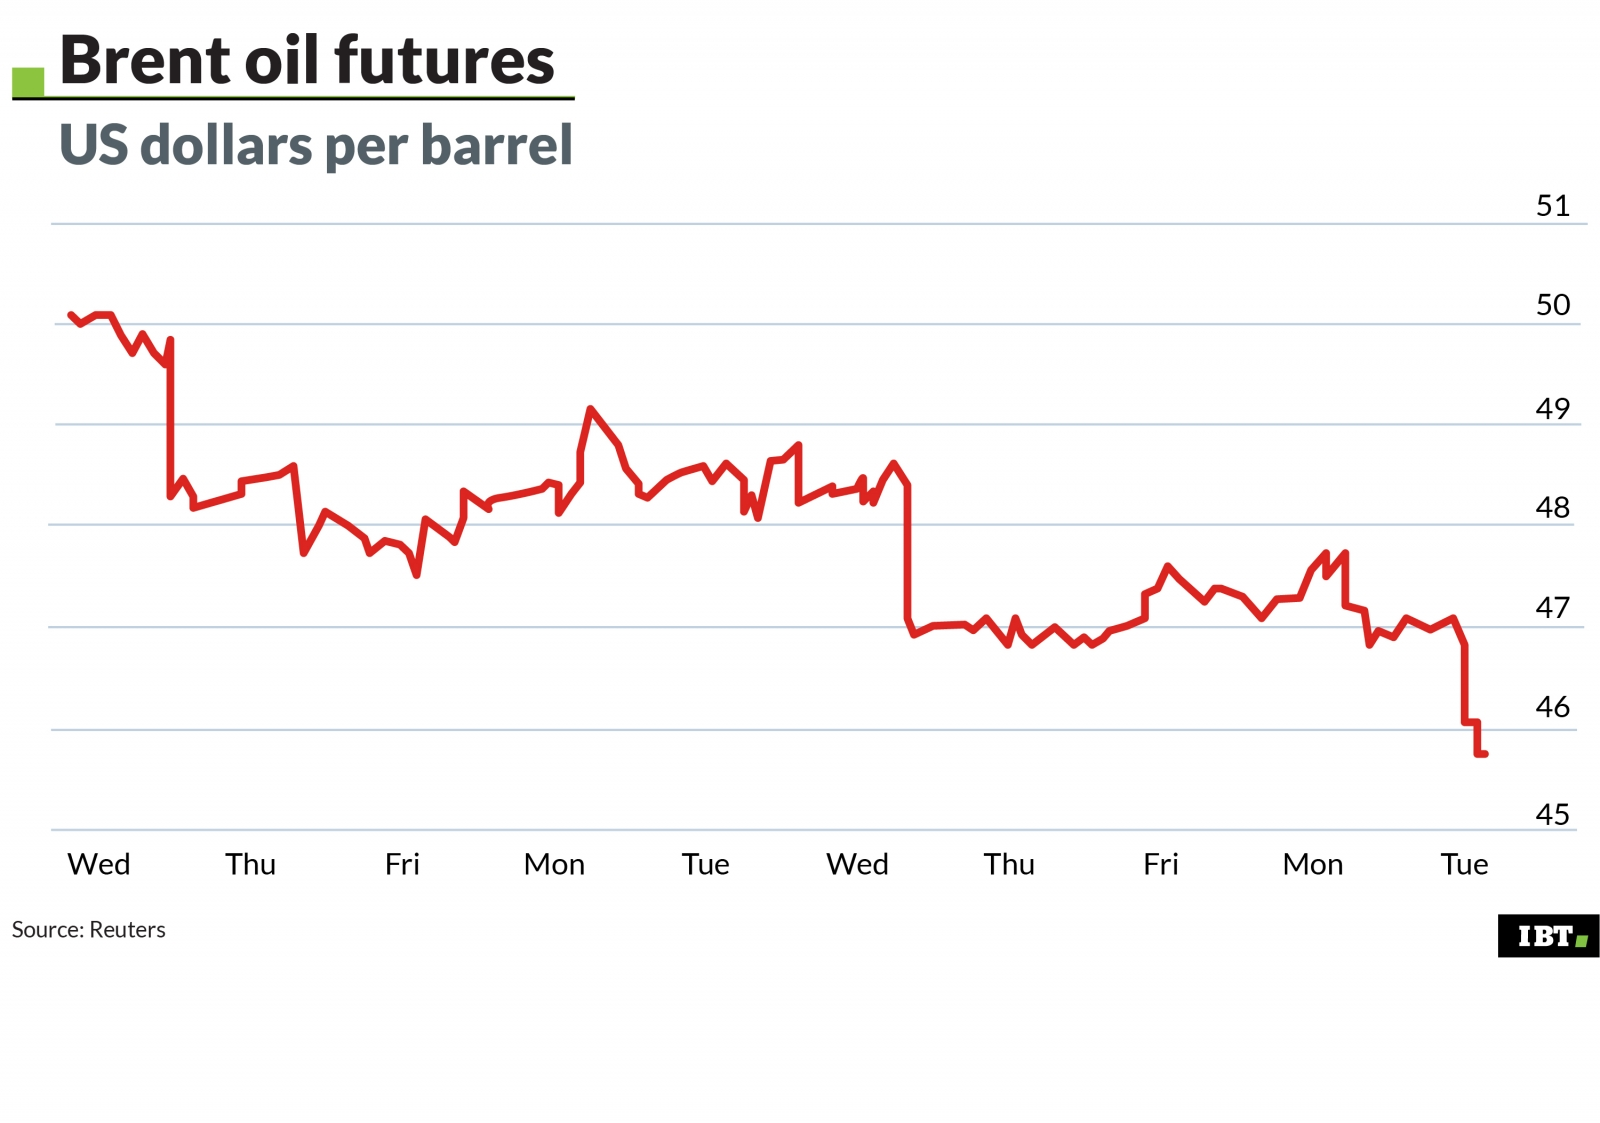 Oil plunges to 7-month low on US rig data and Libyan crude